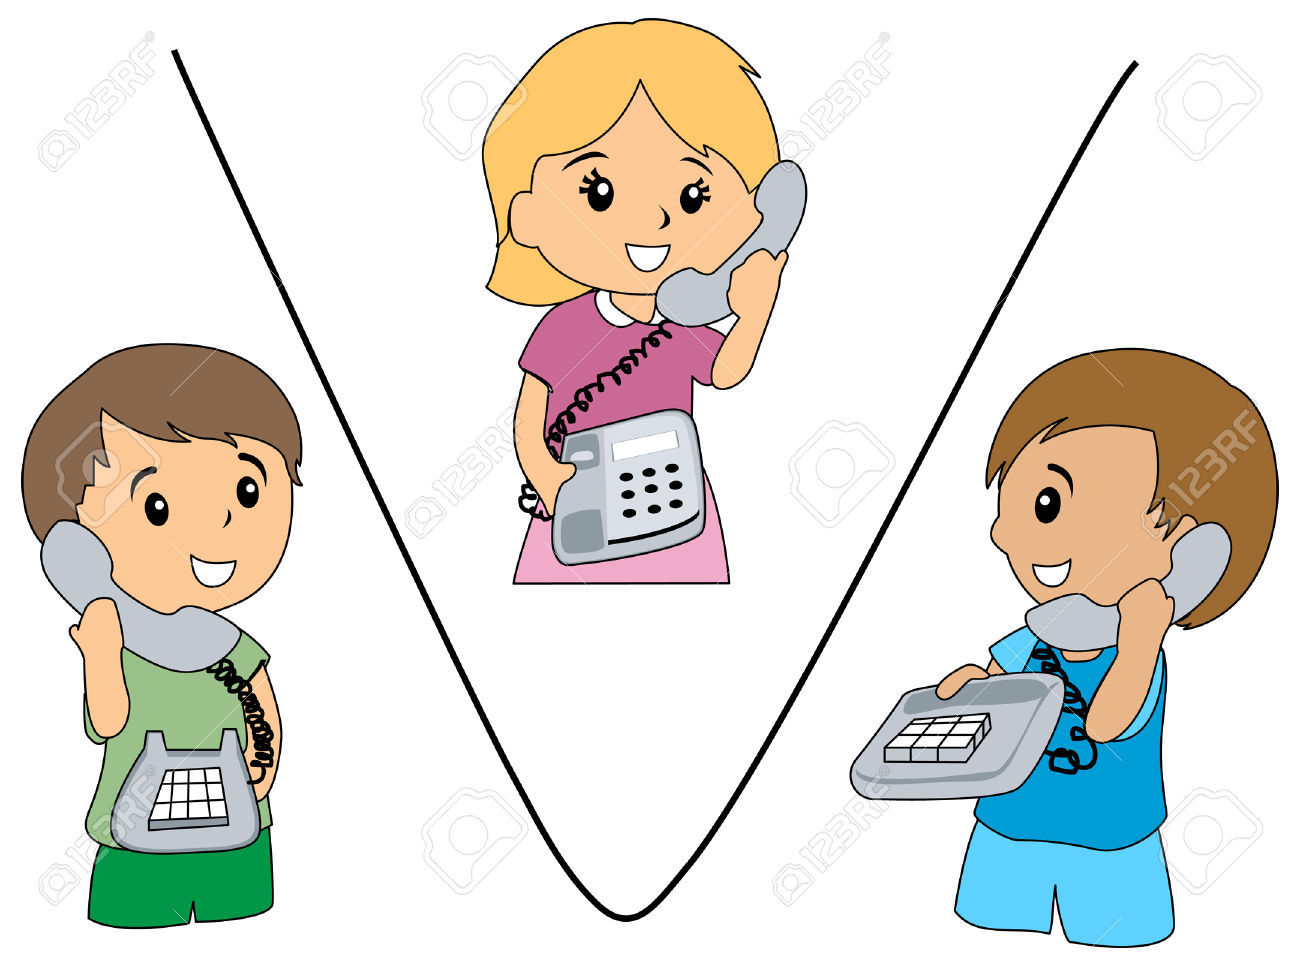 Illustration Of Kids Talking On The Phone Royalty Free Cliparts.